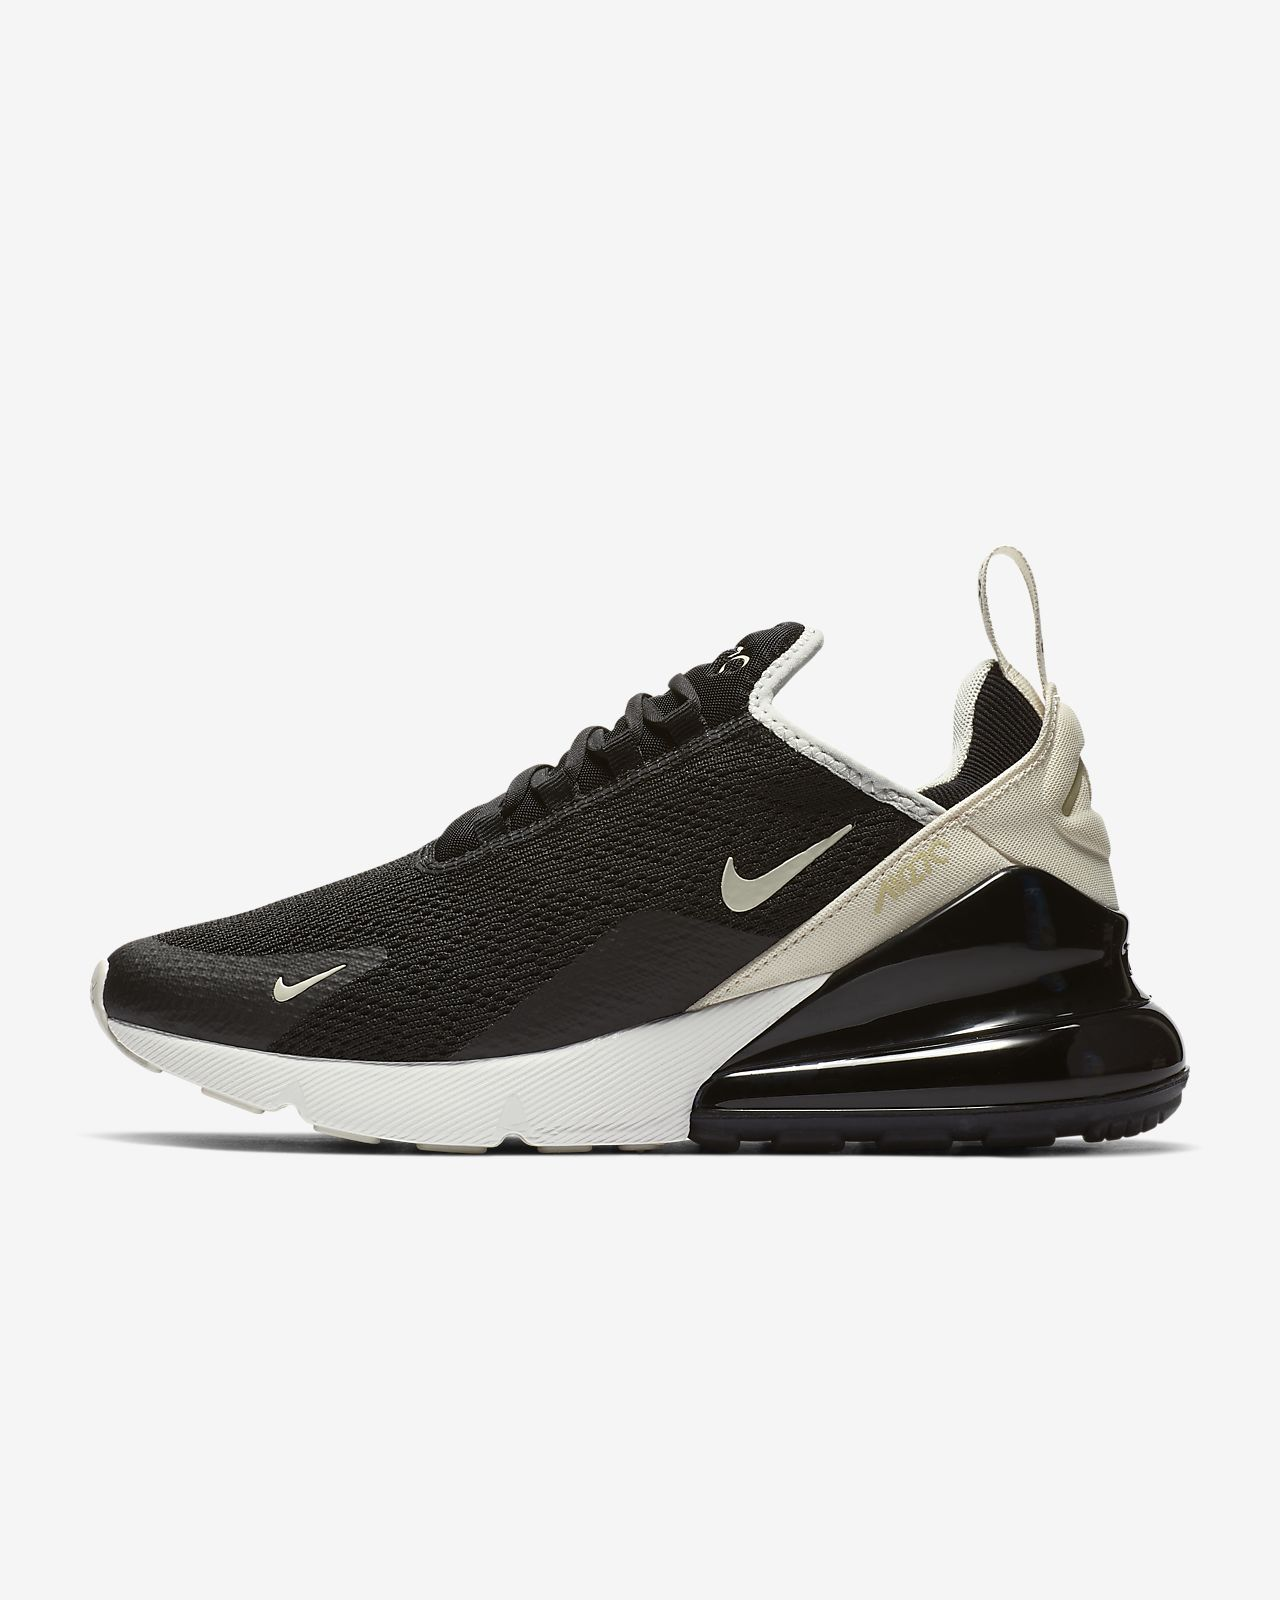 cheaper 4eea8 379f8 Nike Air Max 270